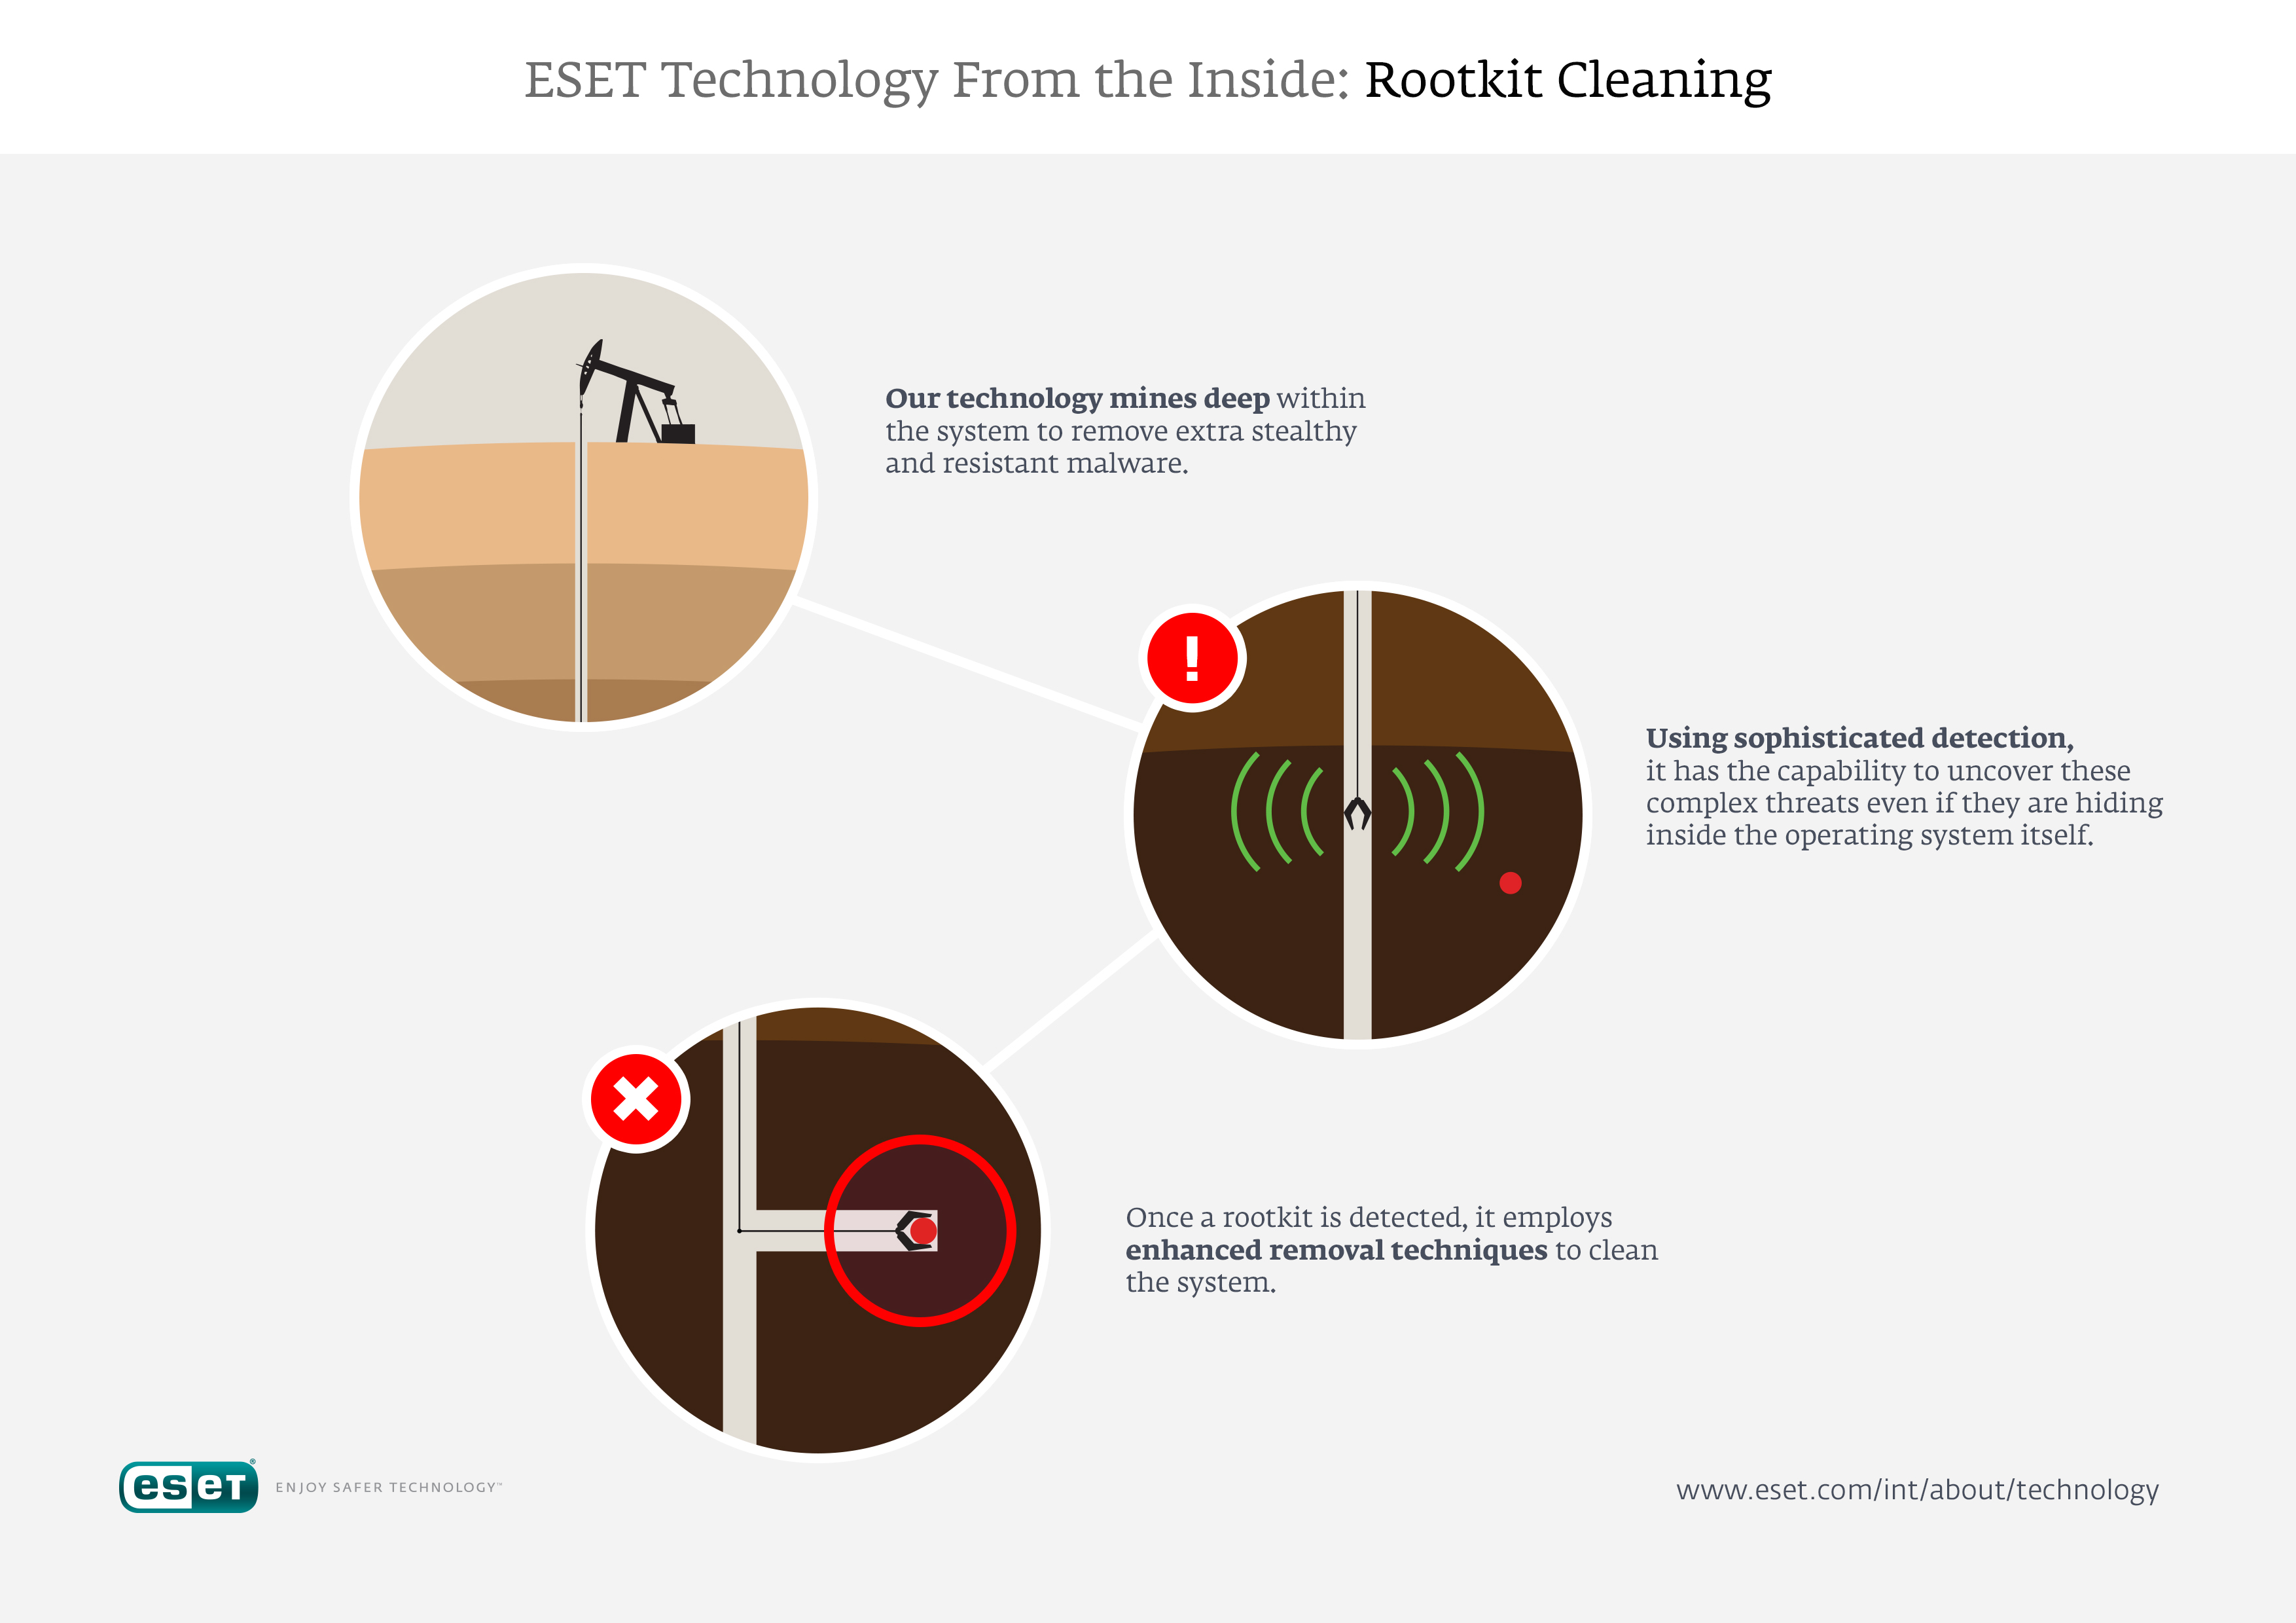 V9_07_Technology_From_The_Inside_Rootkit_Cleaning